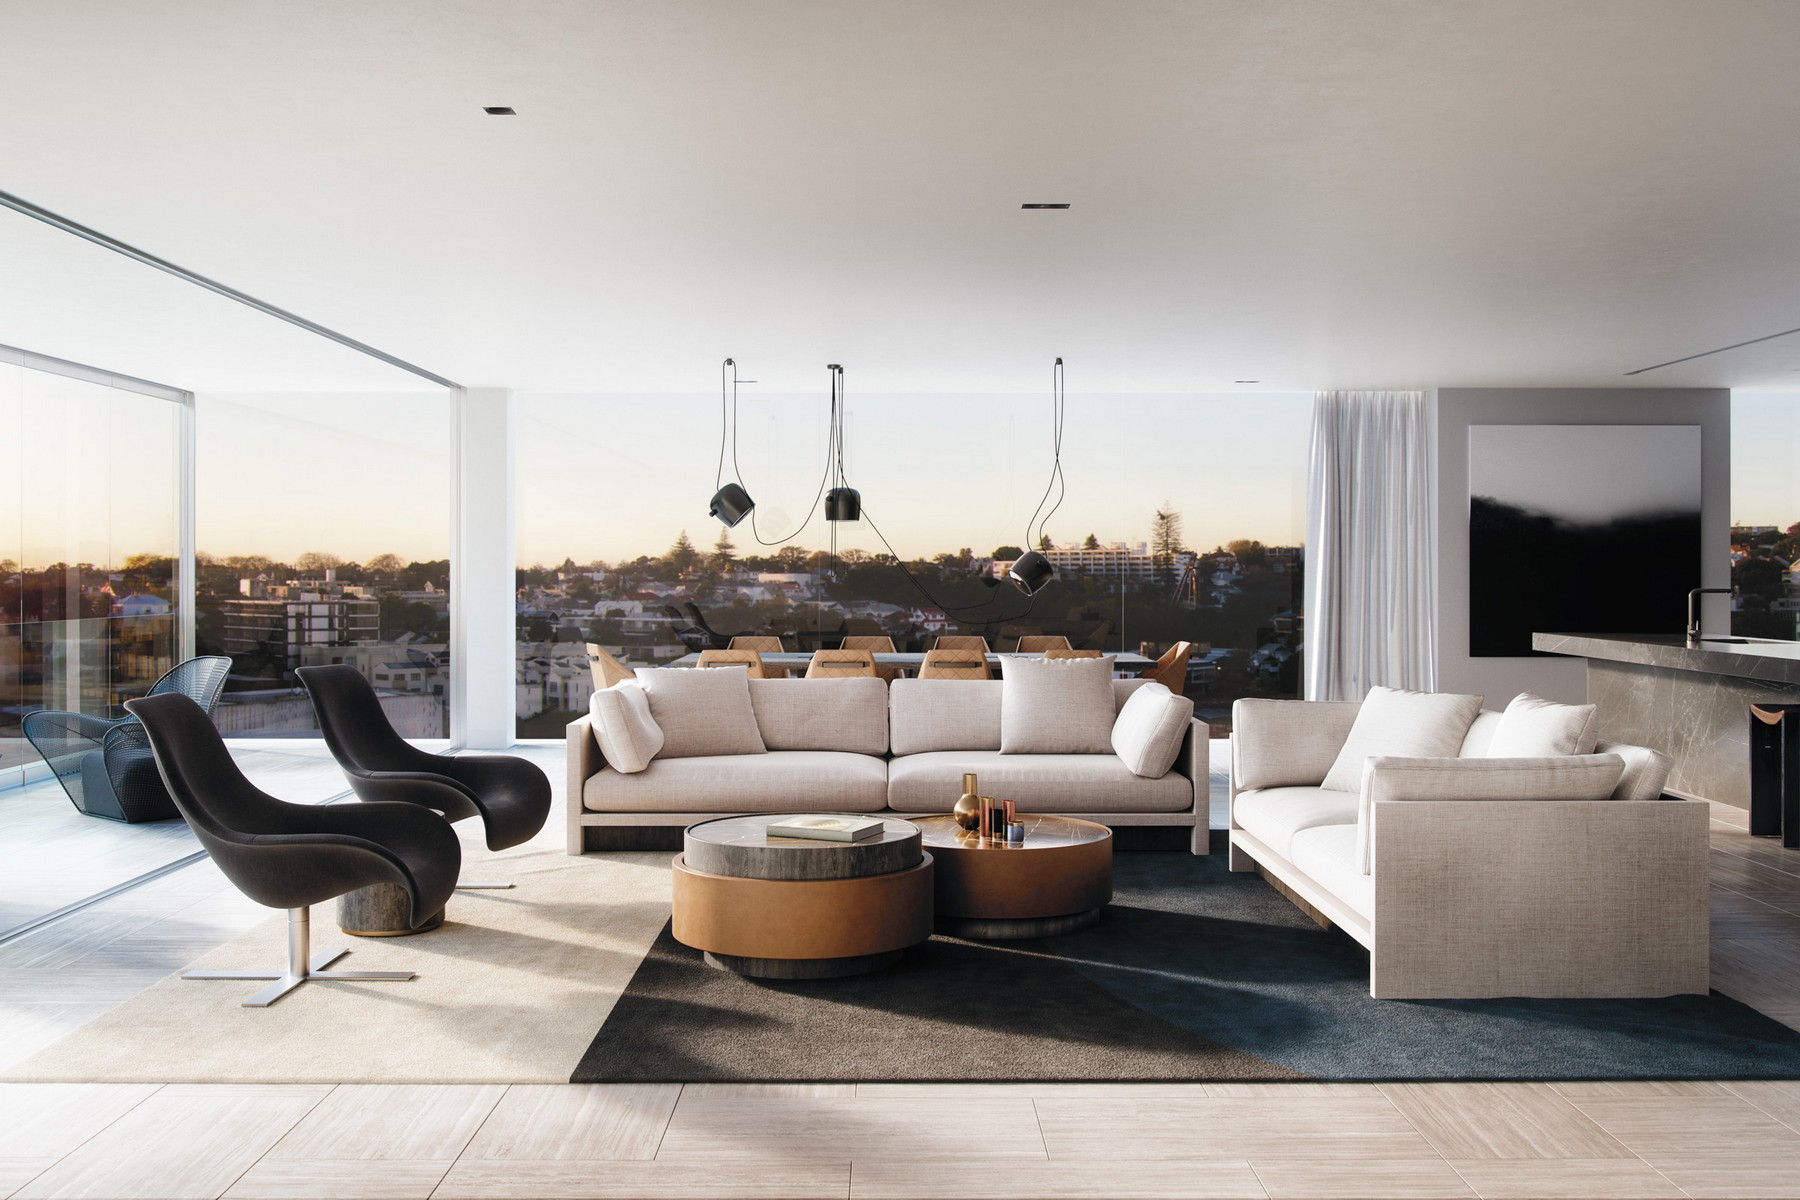 Apartment for Sale at EDITION - TWO BEDROOM APARTMENTS PLUS MEDIA 2 Churton Street, Auckland, Auckland, 1052 New Zealand